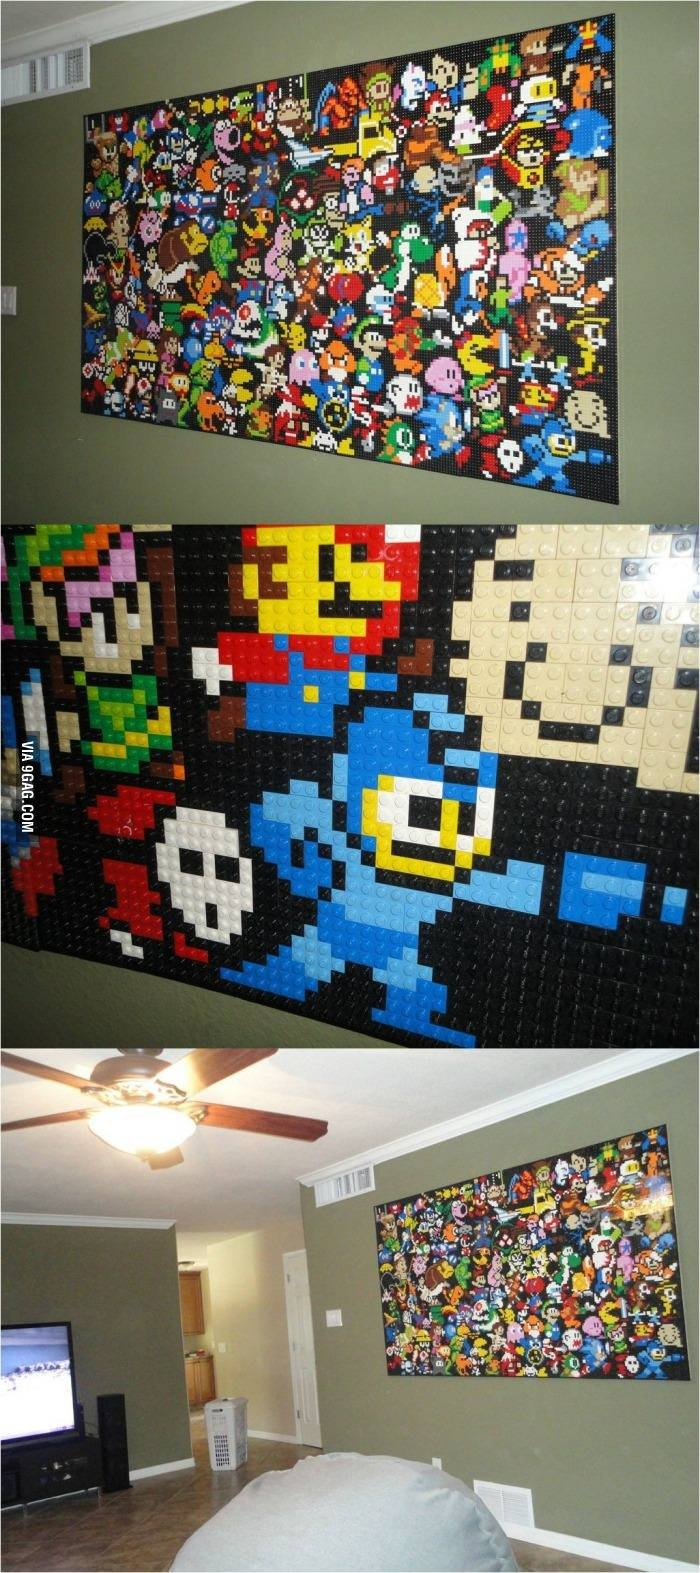 Video Game Classics On A Lego Wall! : Gaming Regarding Recent Video Game Wall Art (Gallery 21 of 30)